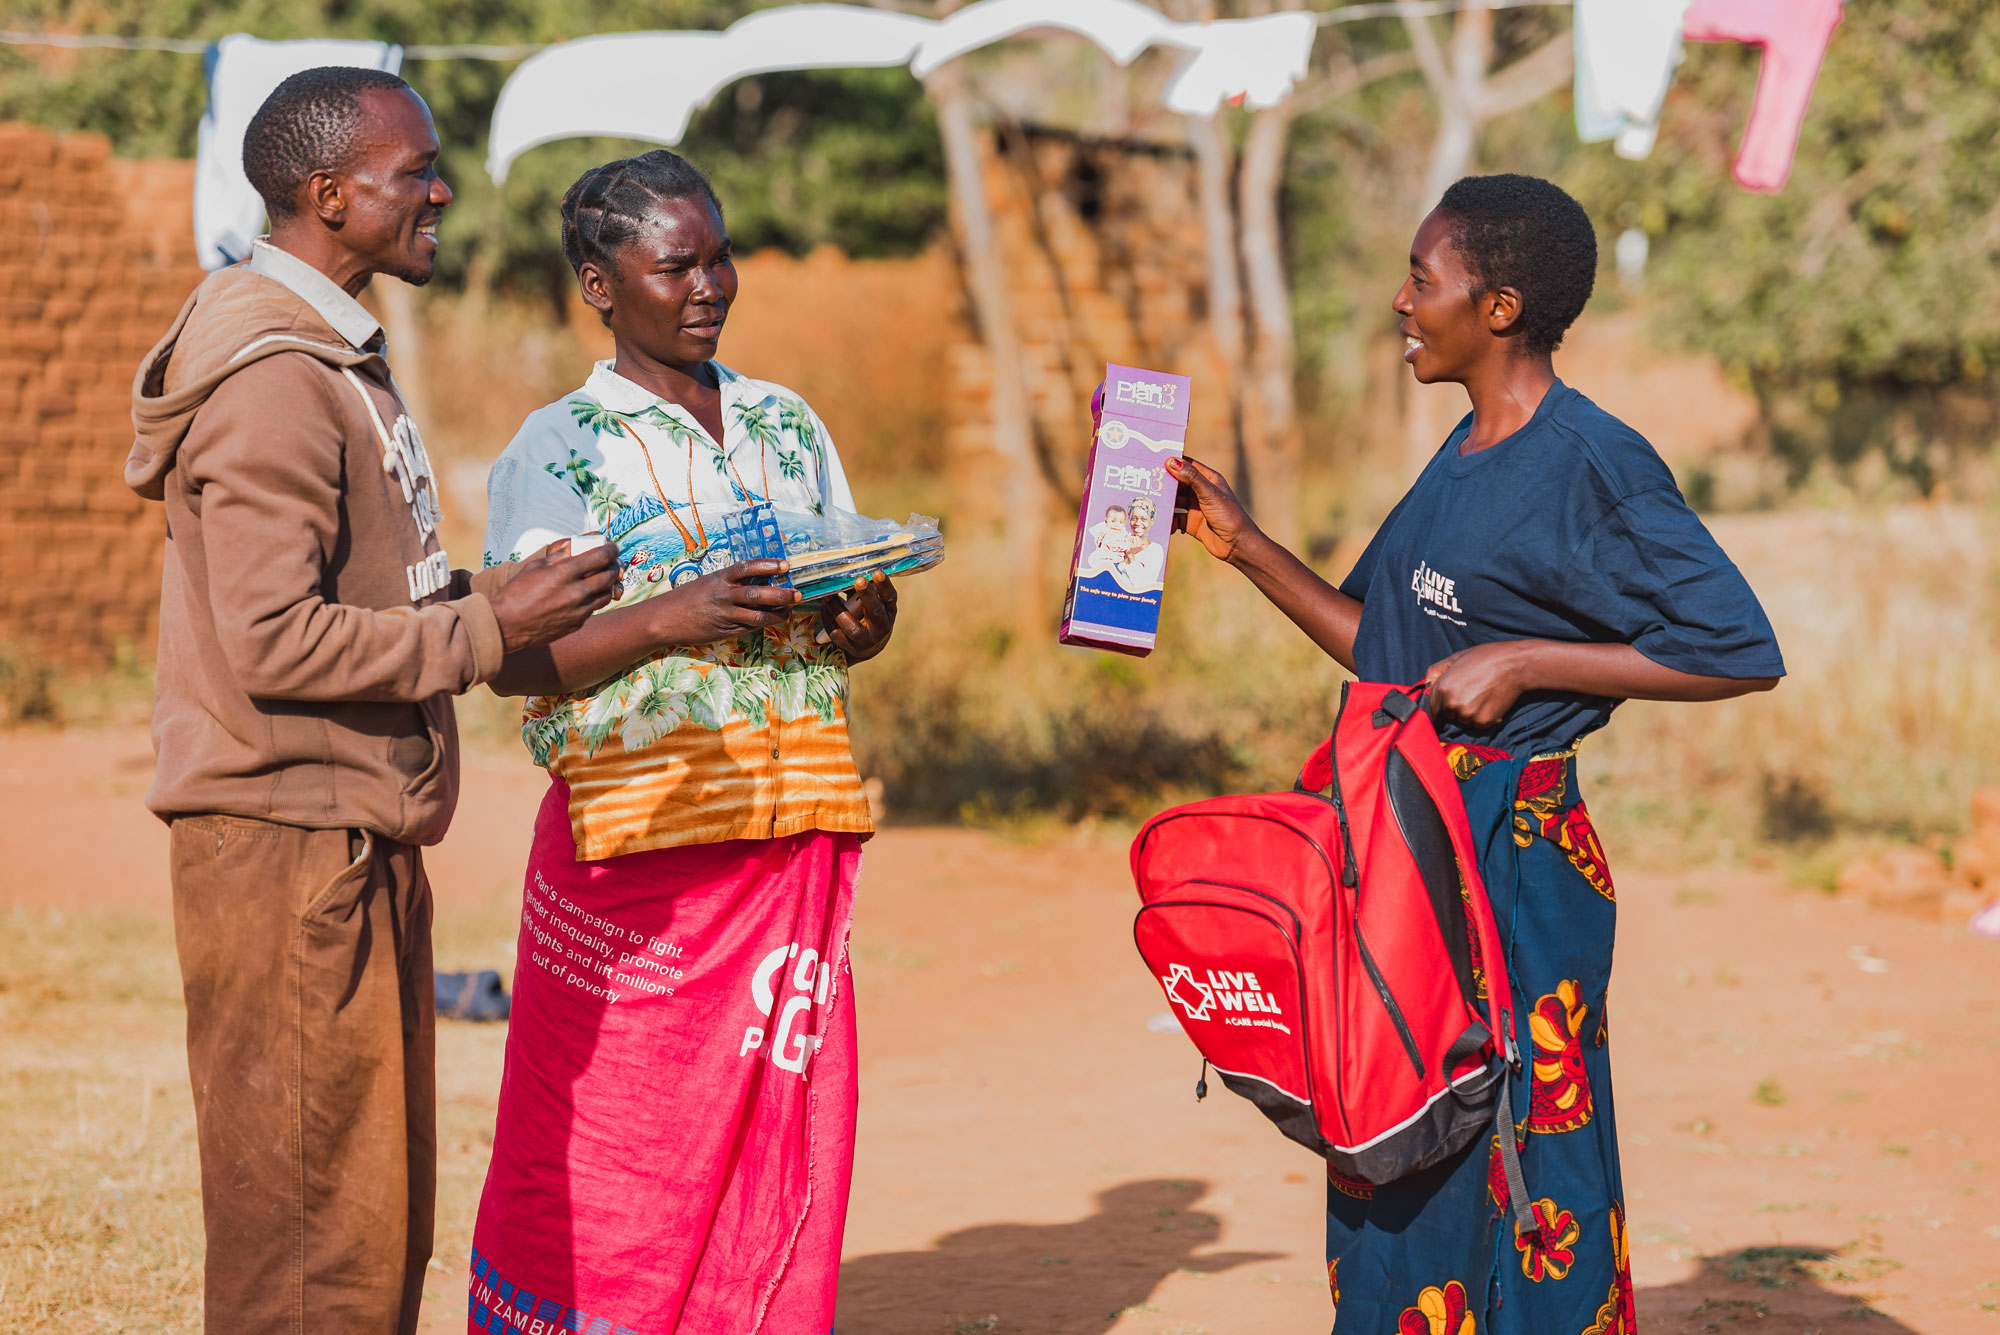 A woman wearing a dark blue Live Well shirt shows supplies to a man and woman.